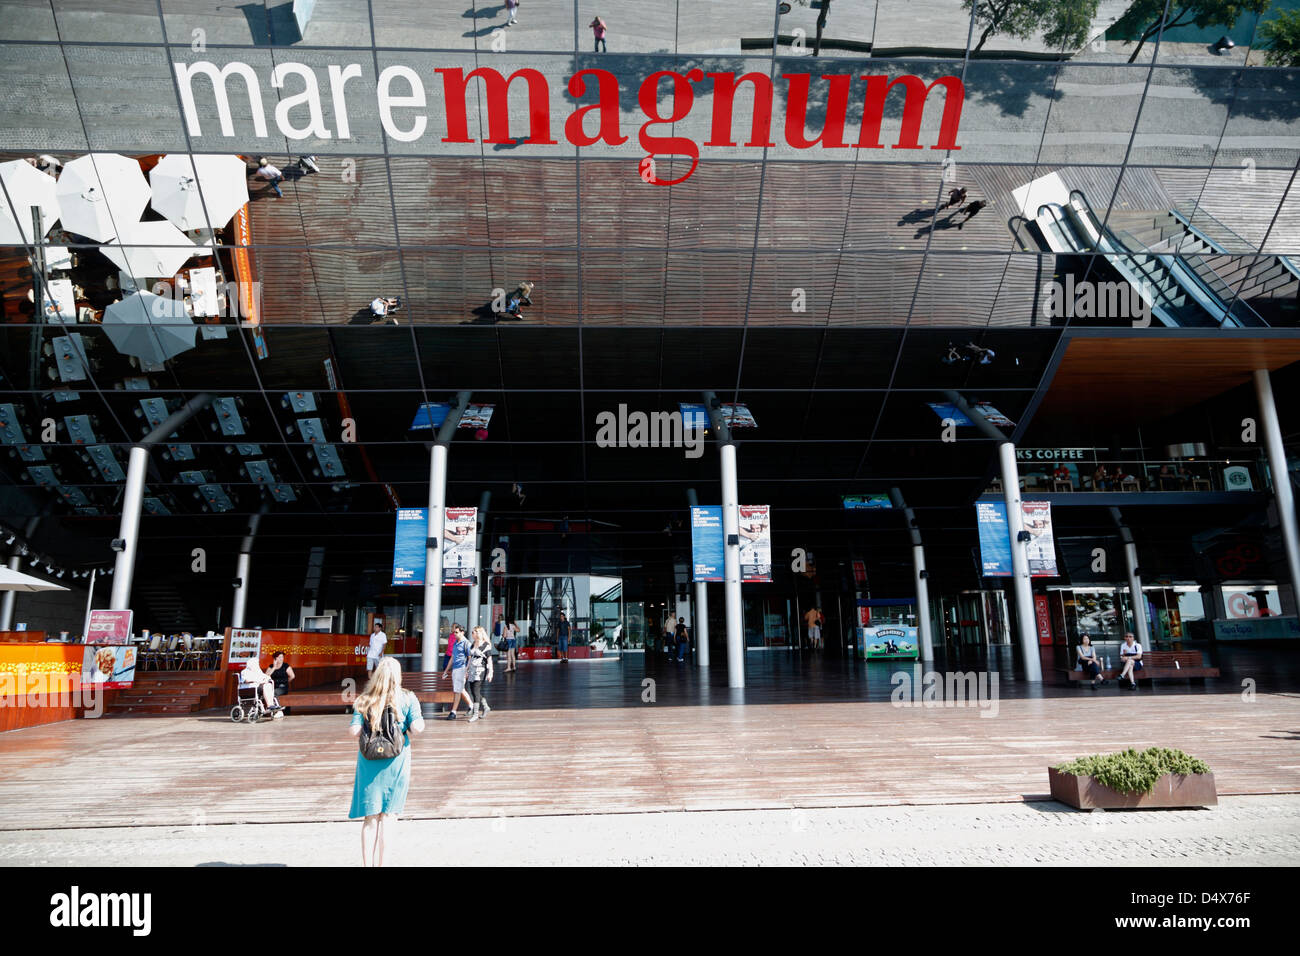 Mare Magnum, shopping mall and entertainment district, Port Vell, Barcelona, Spain - Stock Image